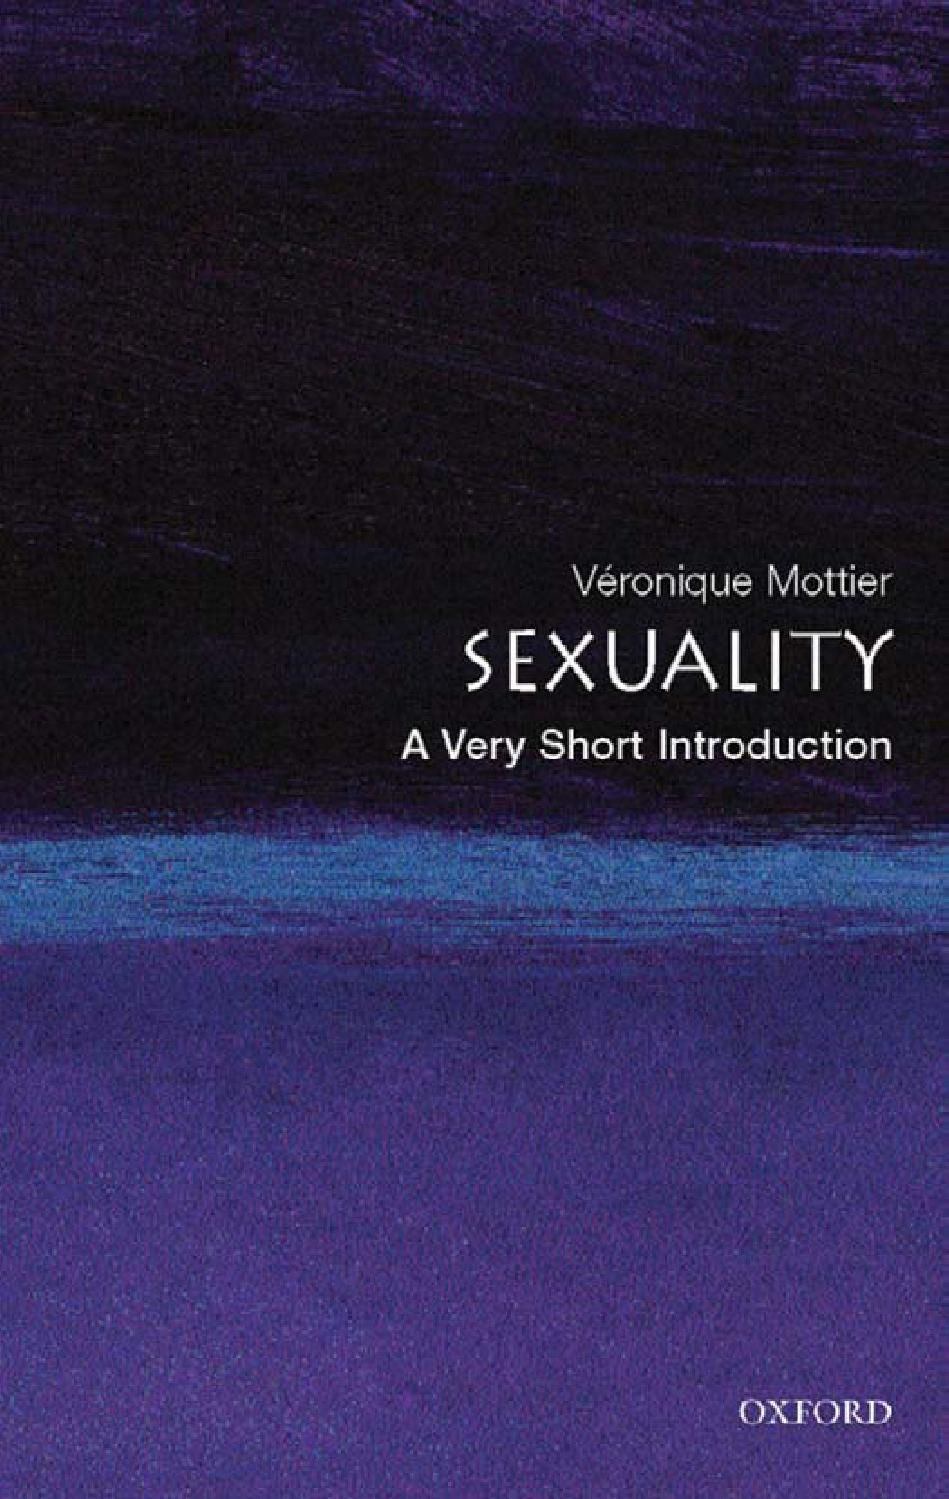 Sexuality: A Very Short Introduction, Veronique Mottier (2008, Oxford University Press) ISBN 9780199